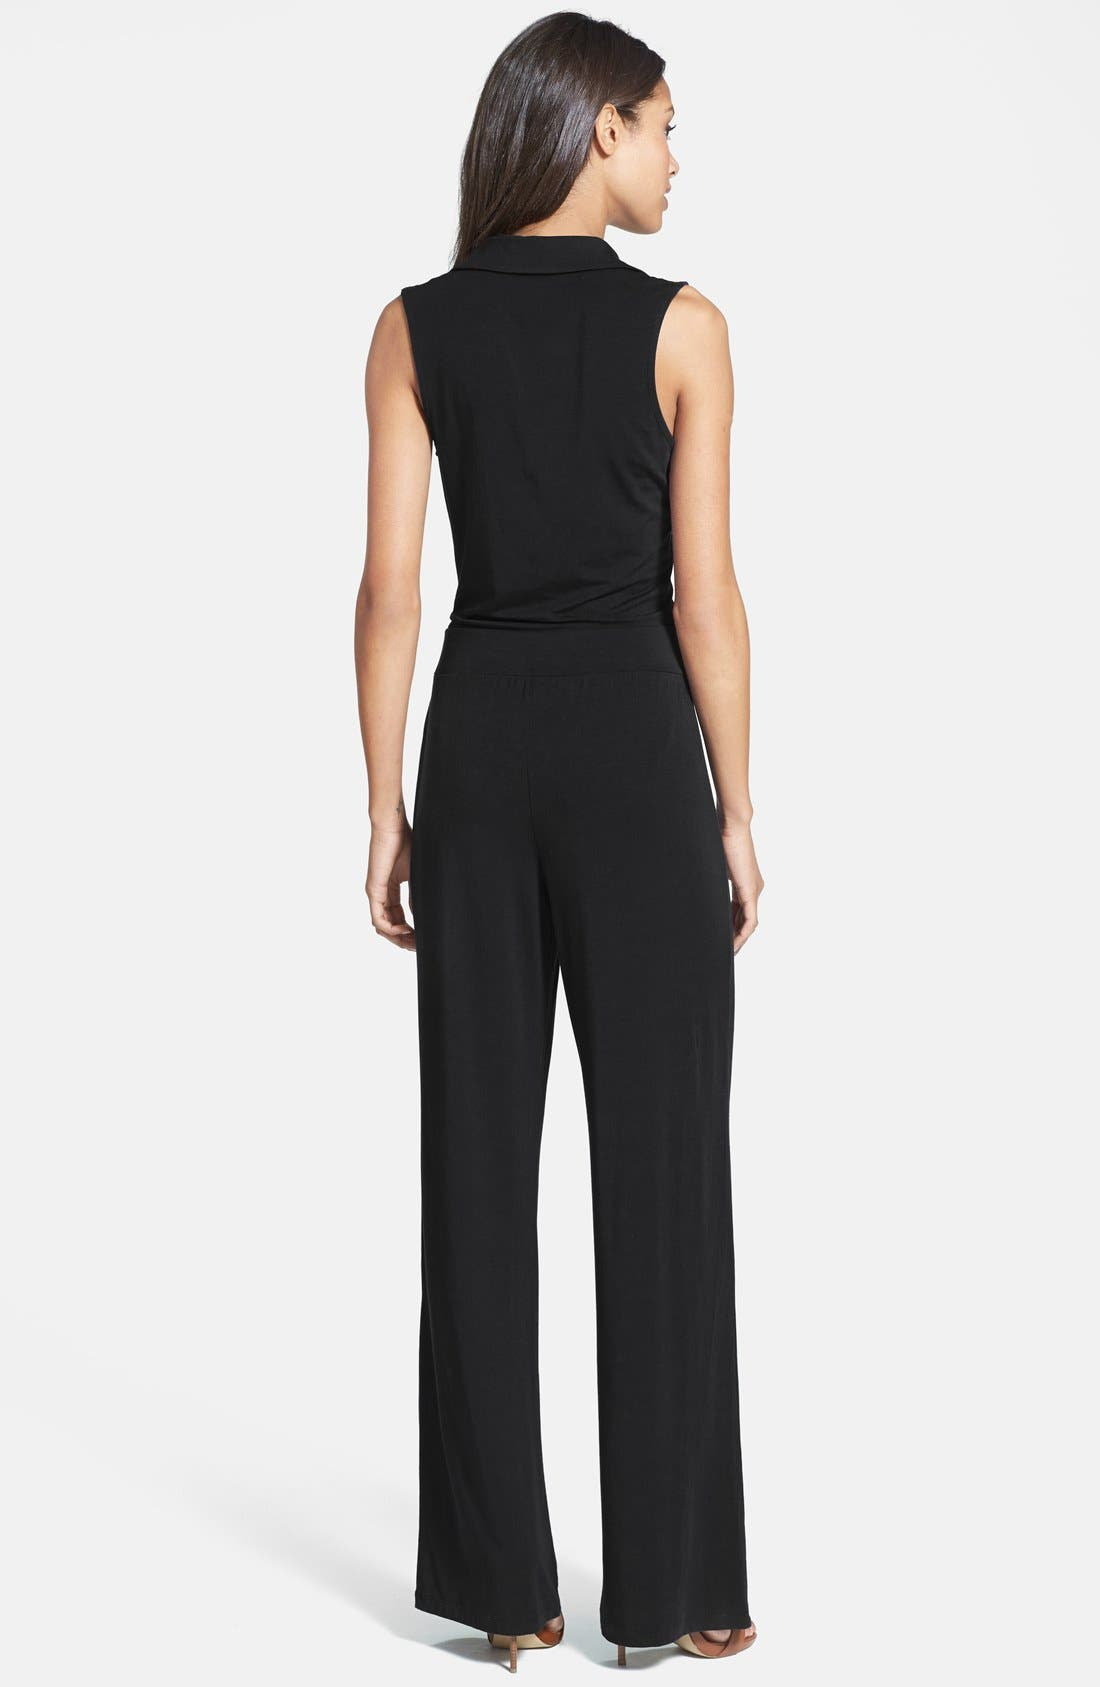 TART, 'Kenna' V-Neck Stretch Jersey Jumpsuit, Alternate thumbnail 2, color, 001